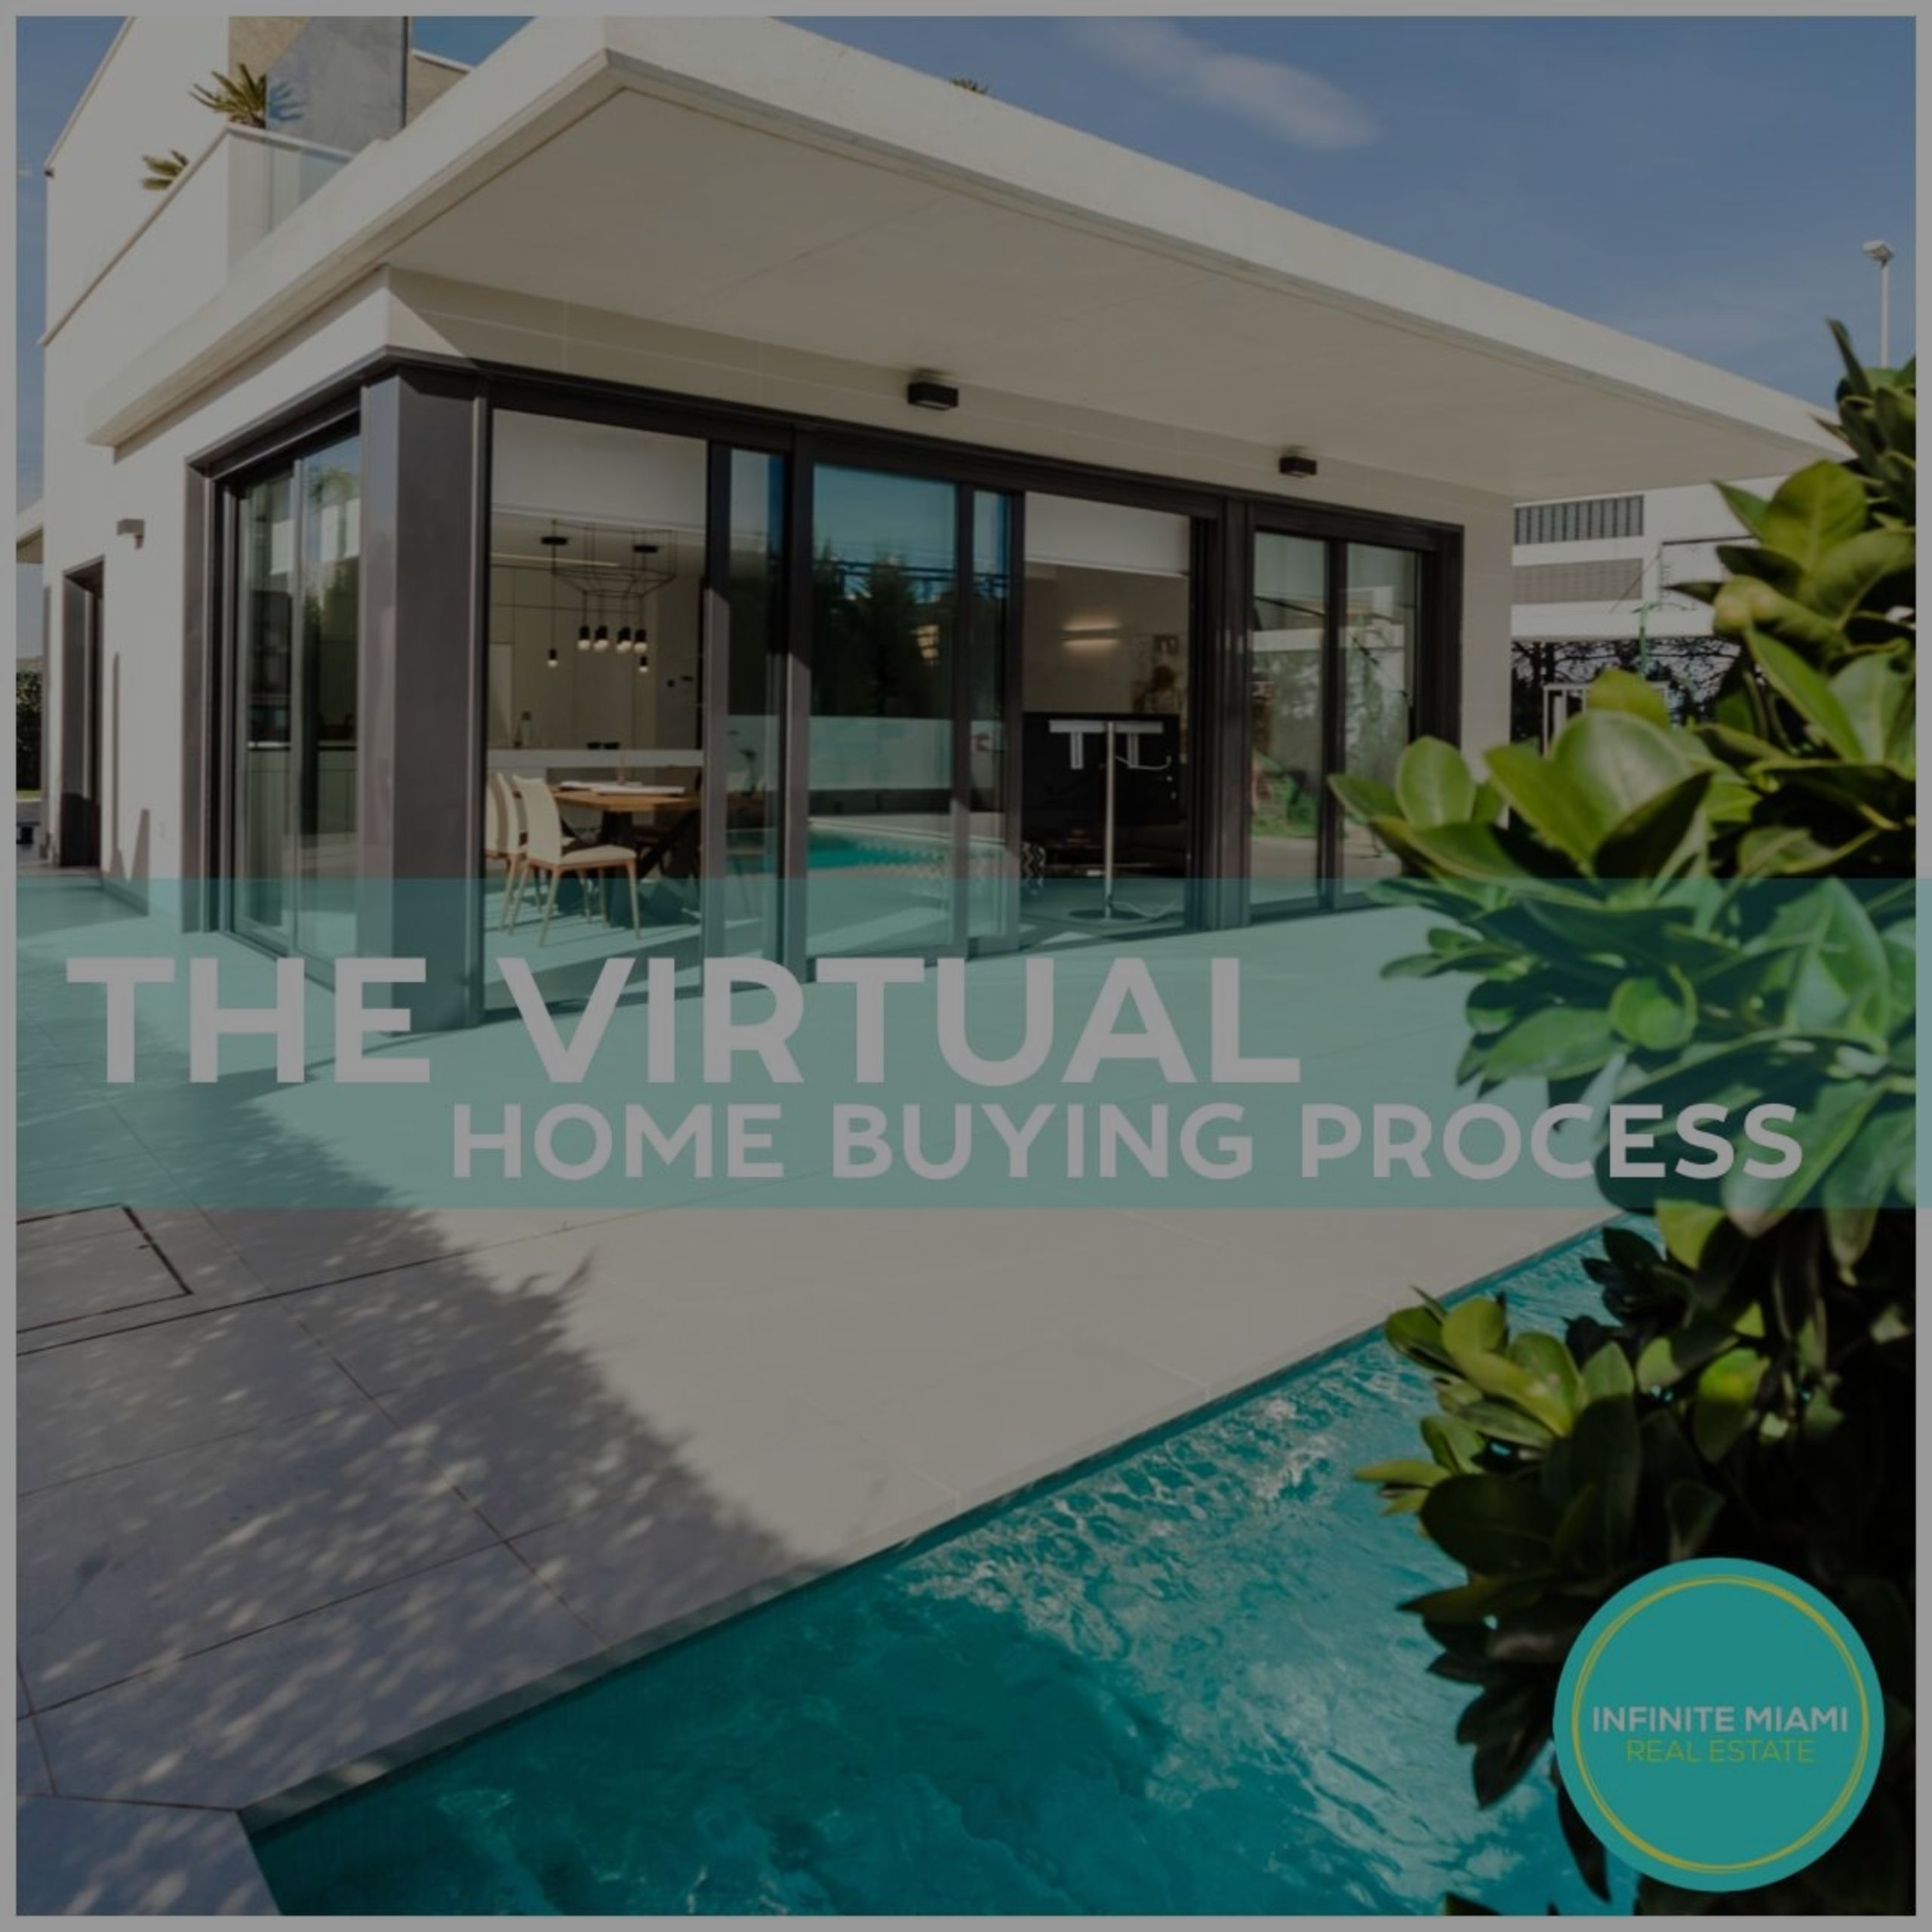 The Virtual Home Buying Process